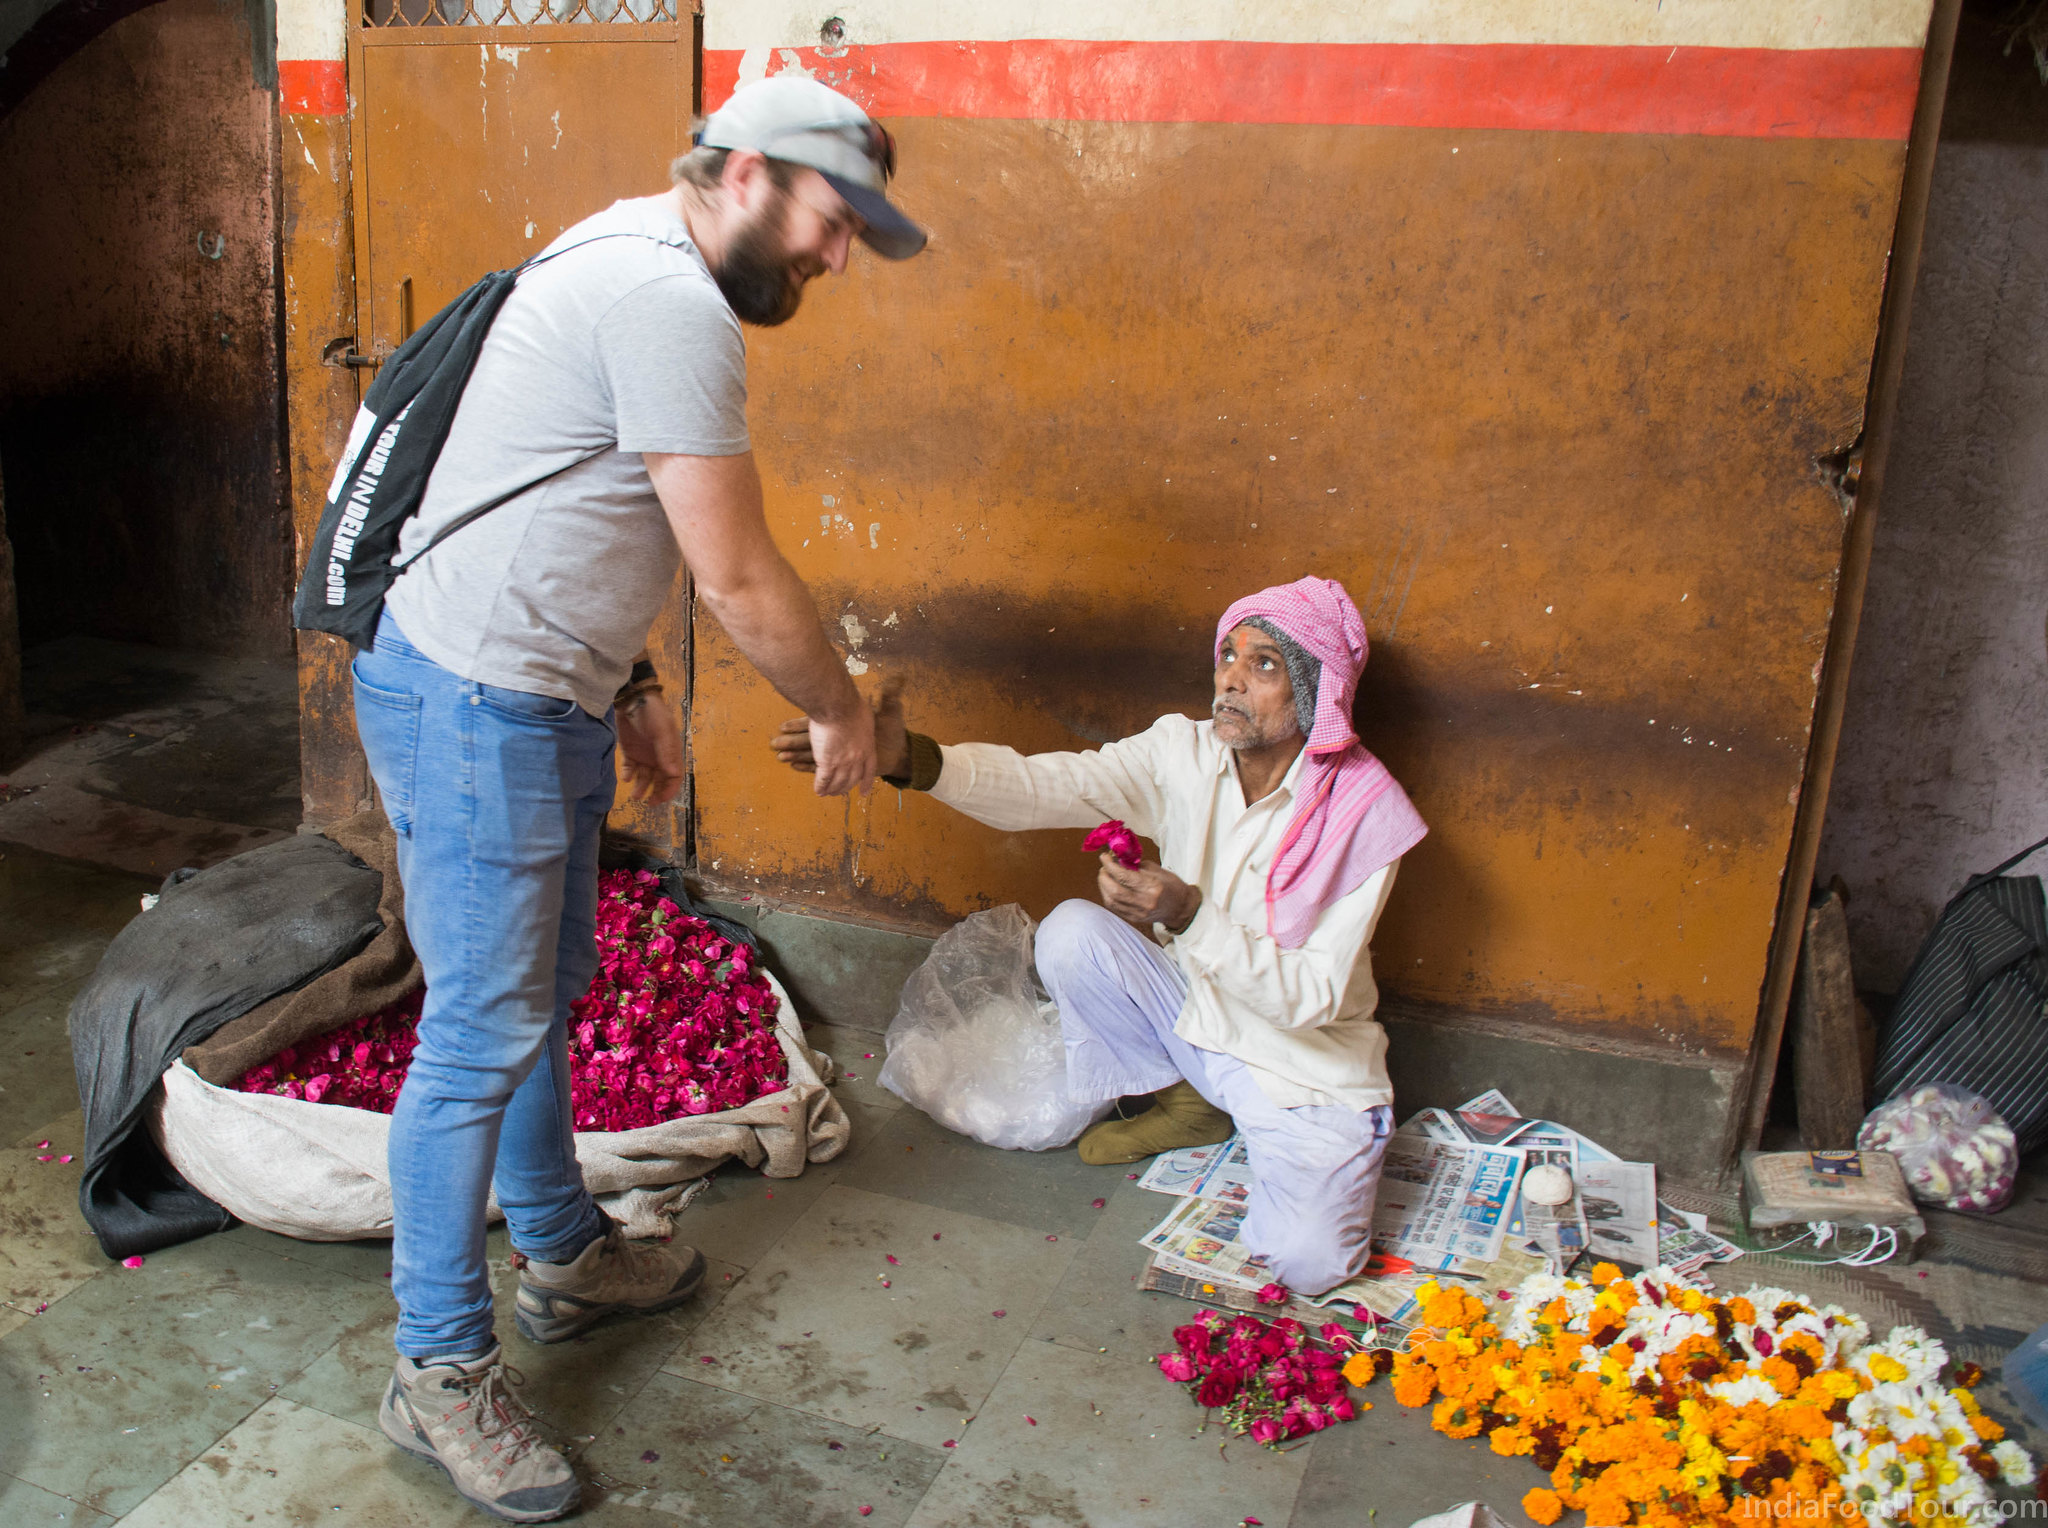 A flower vendor gifting a rose to one of our guests